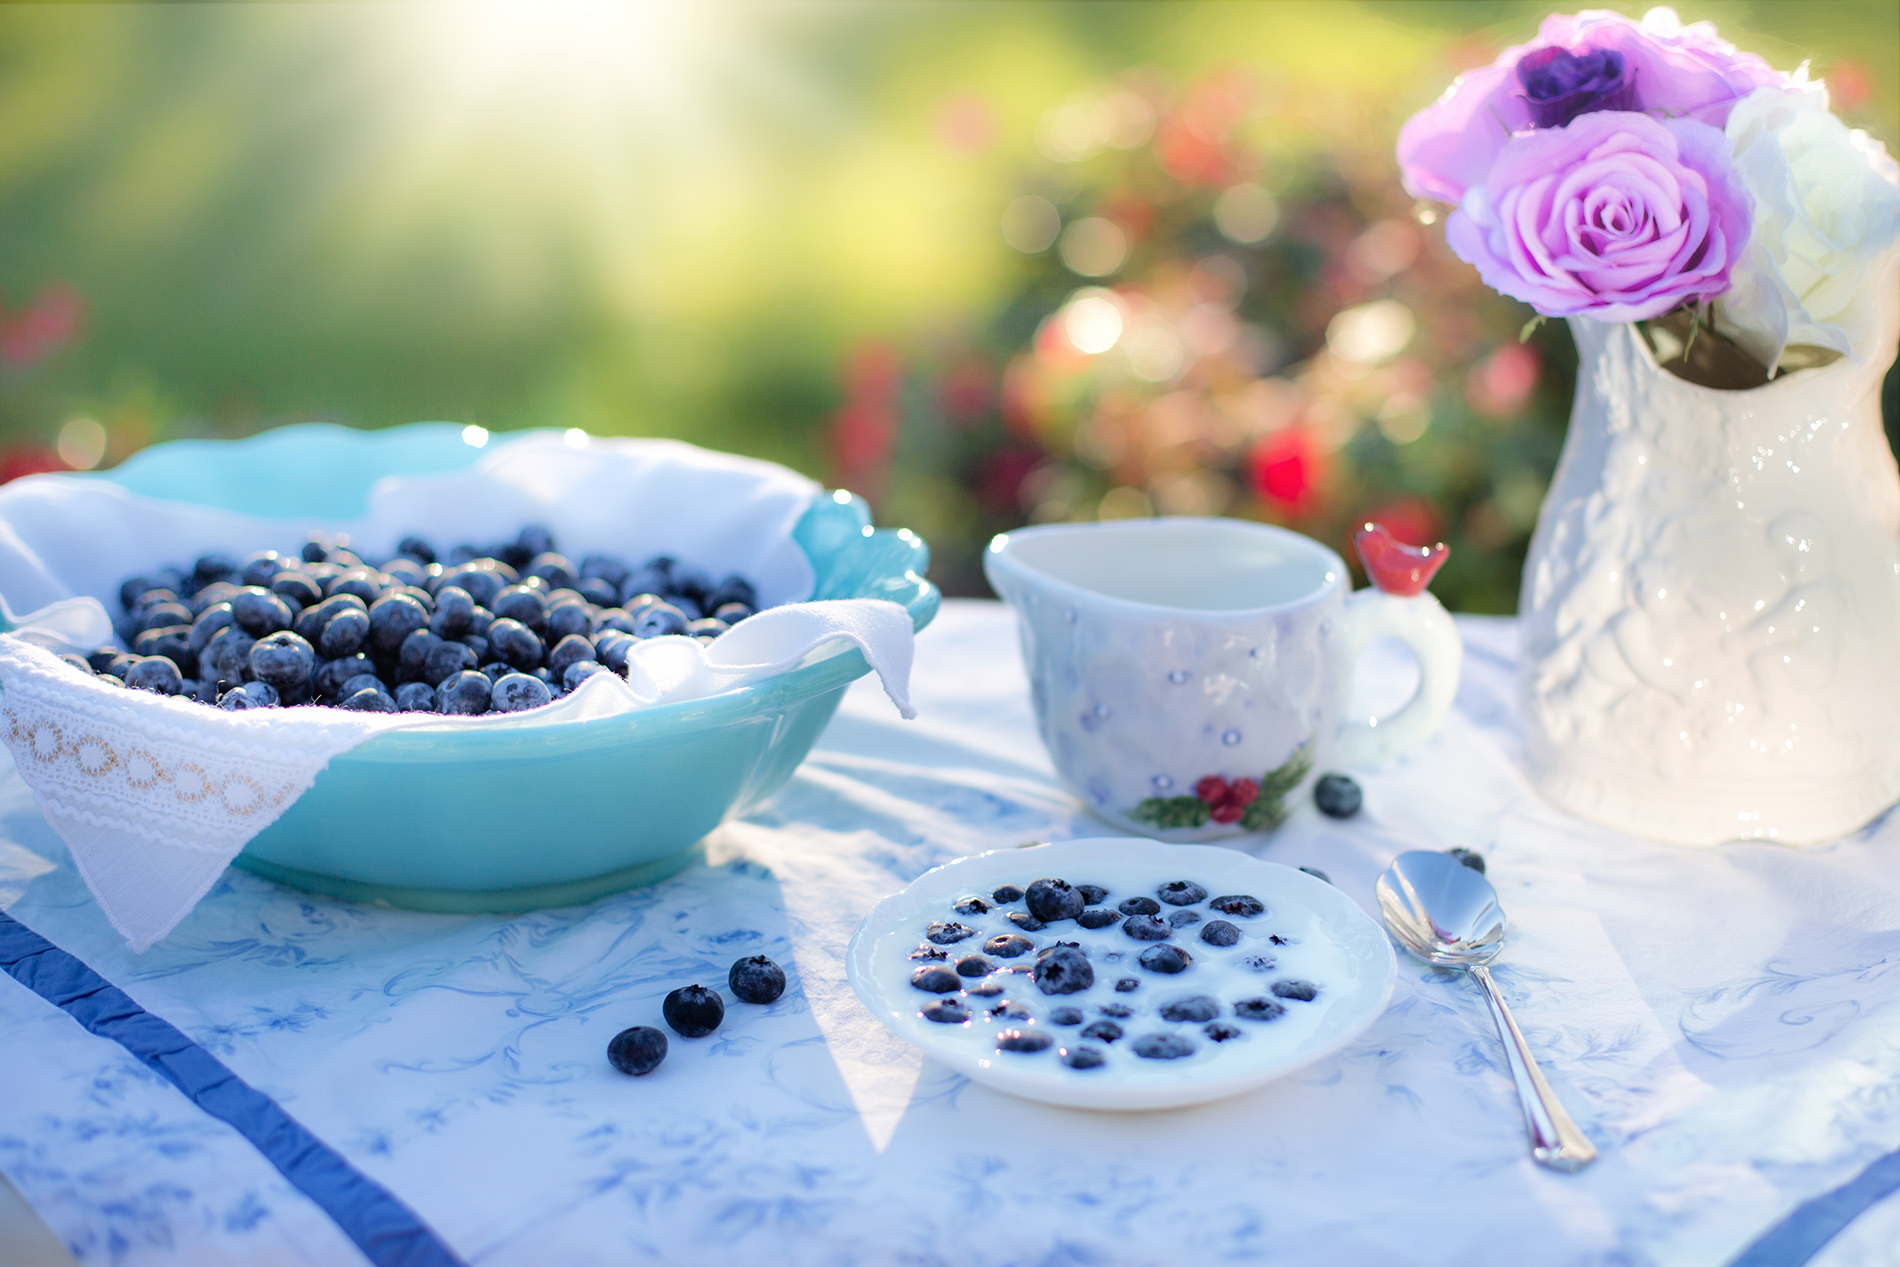 Table milk blueberries 53894